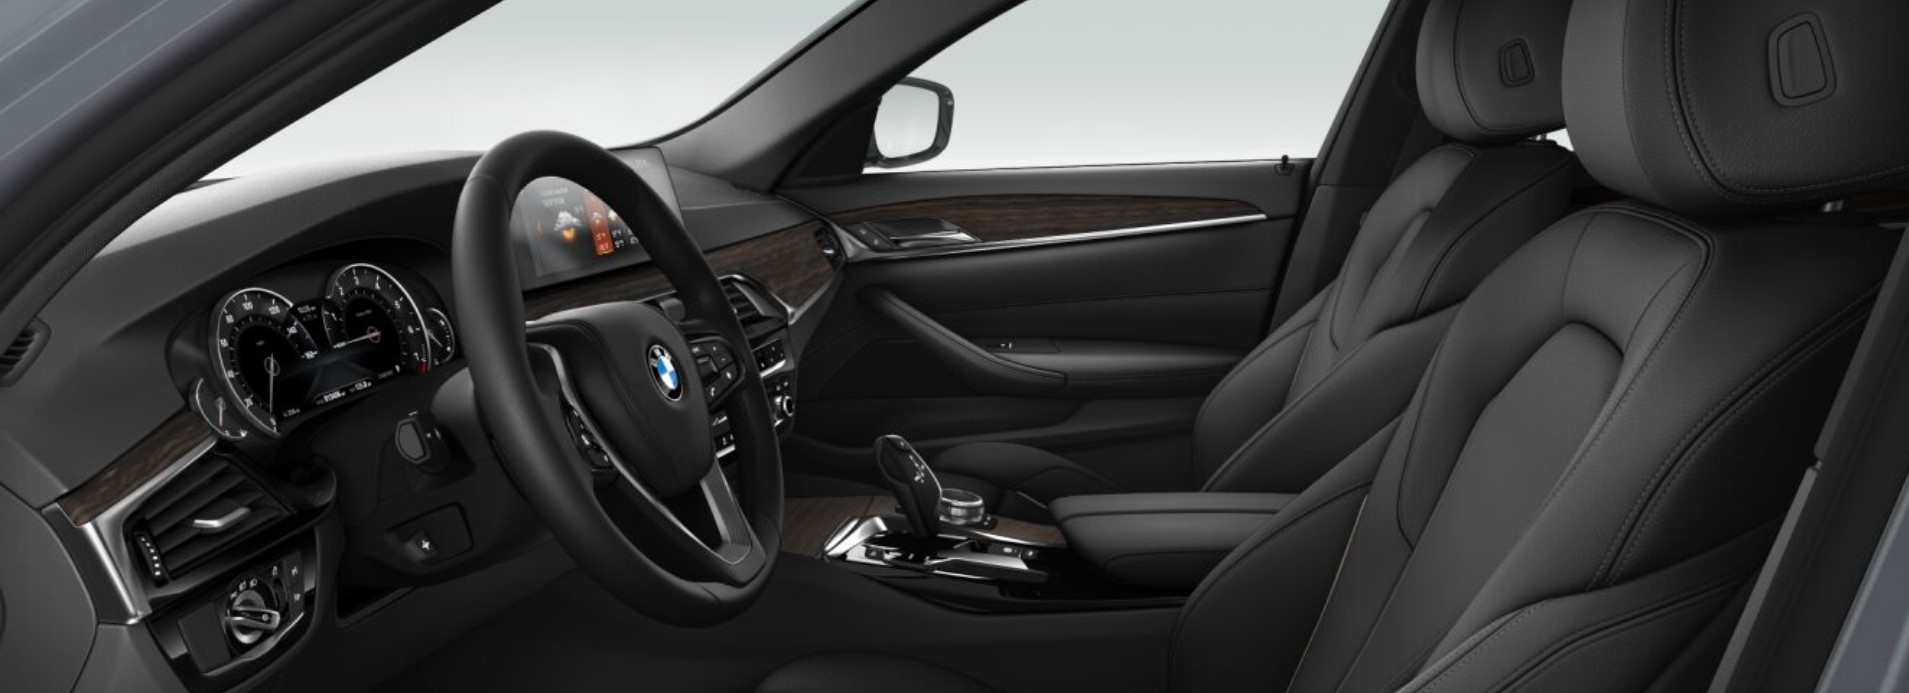 2019 BMW 540i Black Leather Interior